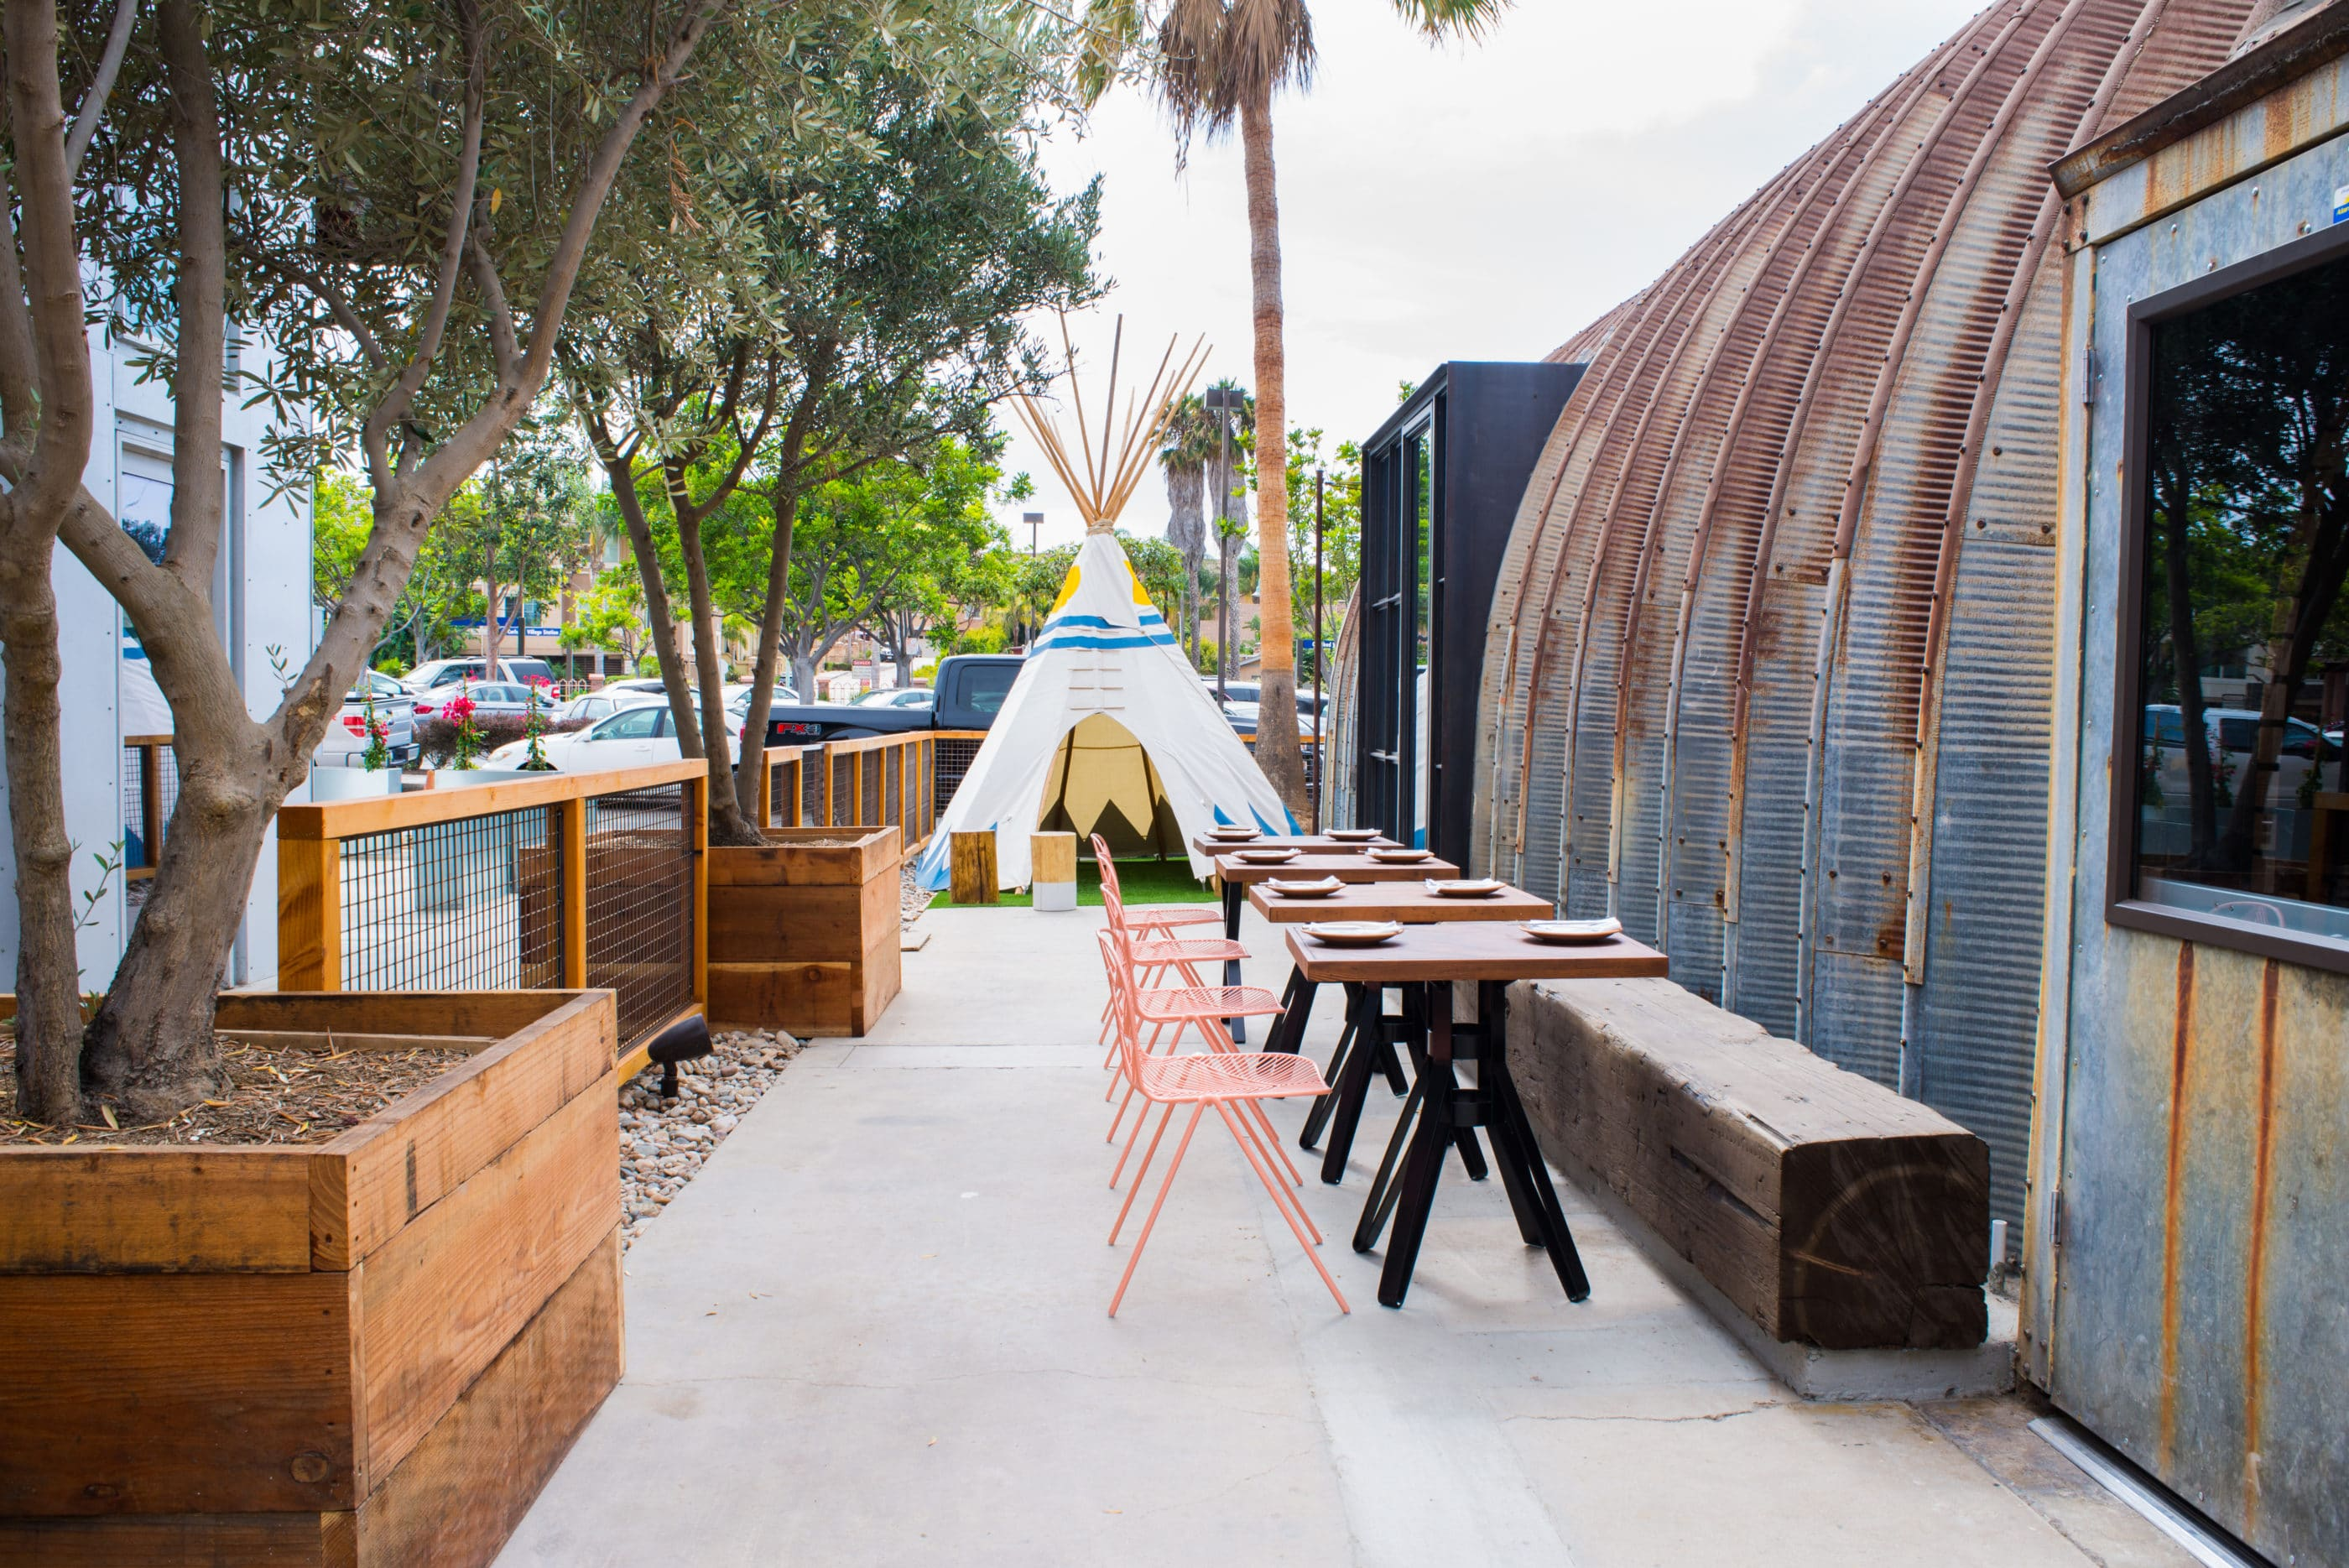 The outdoor seating area at Campfire including the tipi kids' play area.